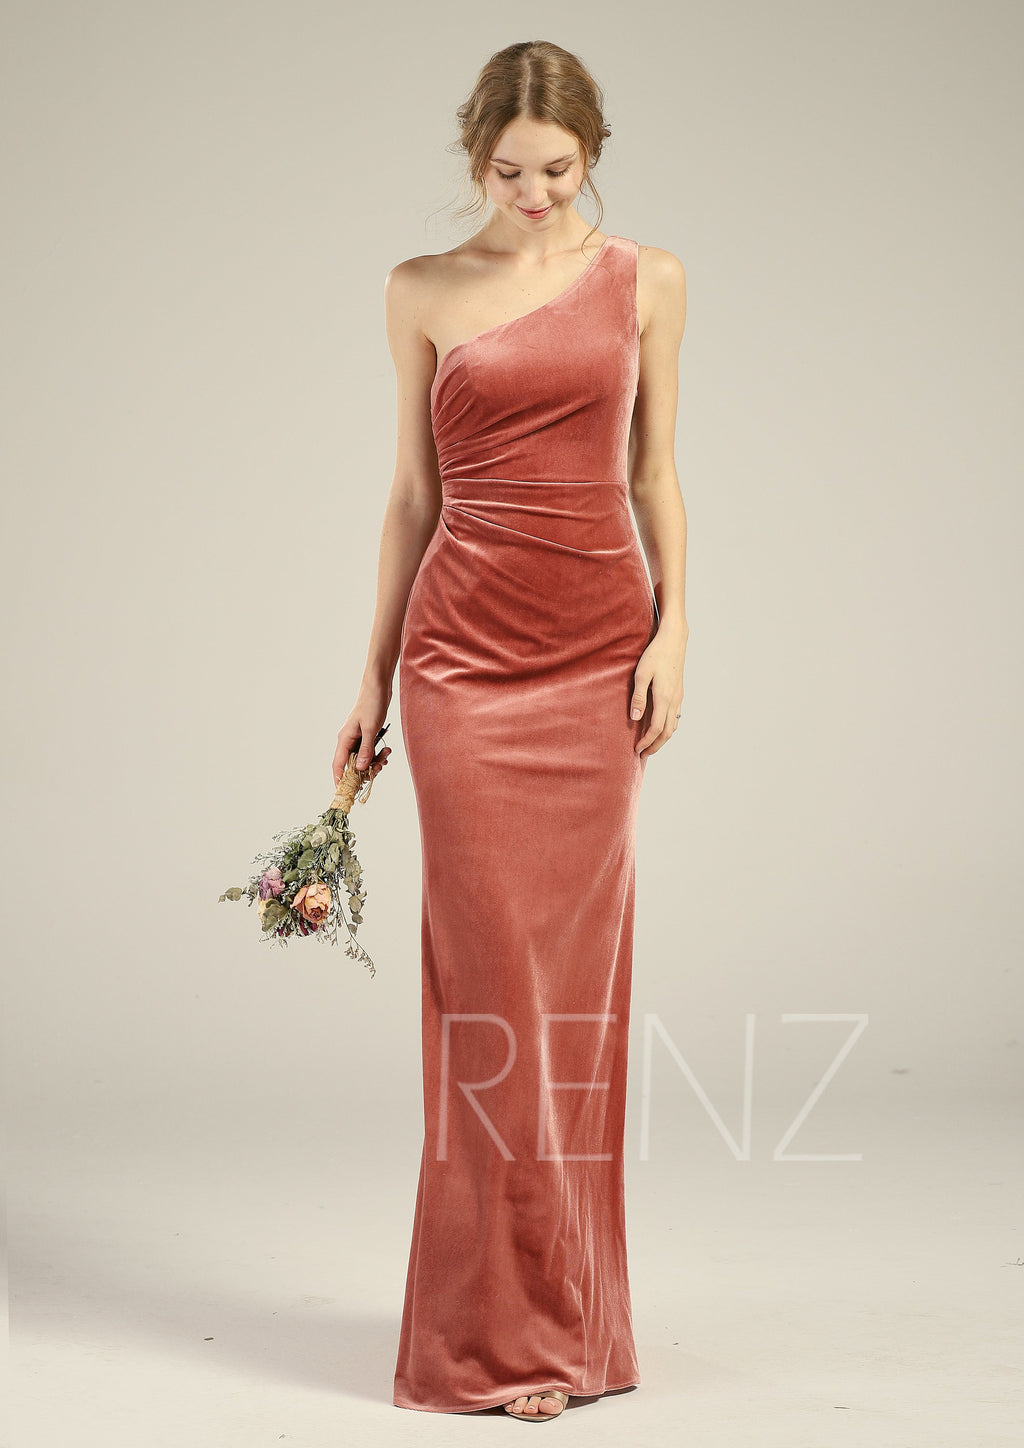 Prom Dress English Rose Velvet Bridesmaid Dress Ruched One Shoulder Wedding Dress Open Back Fitted Party Dress Sleeveless Maxi Dress(LV553)